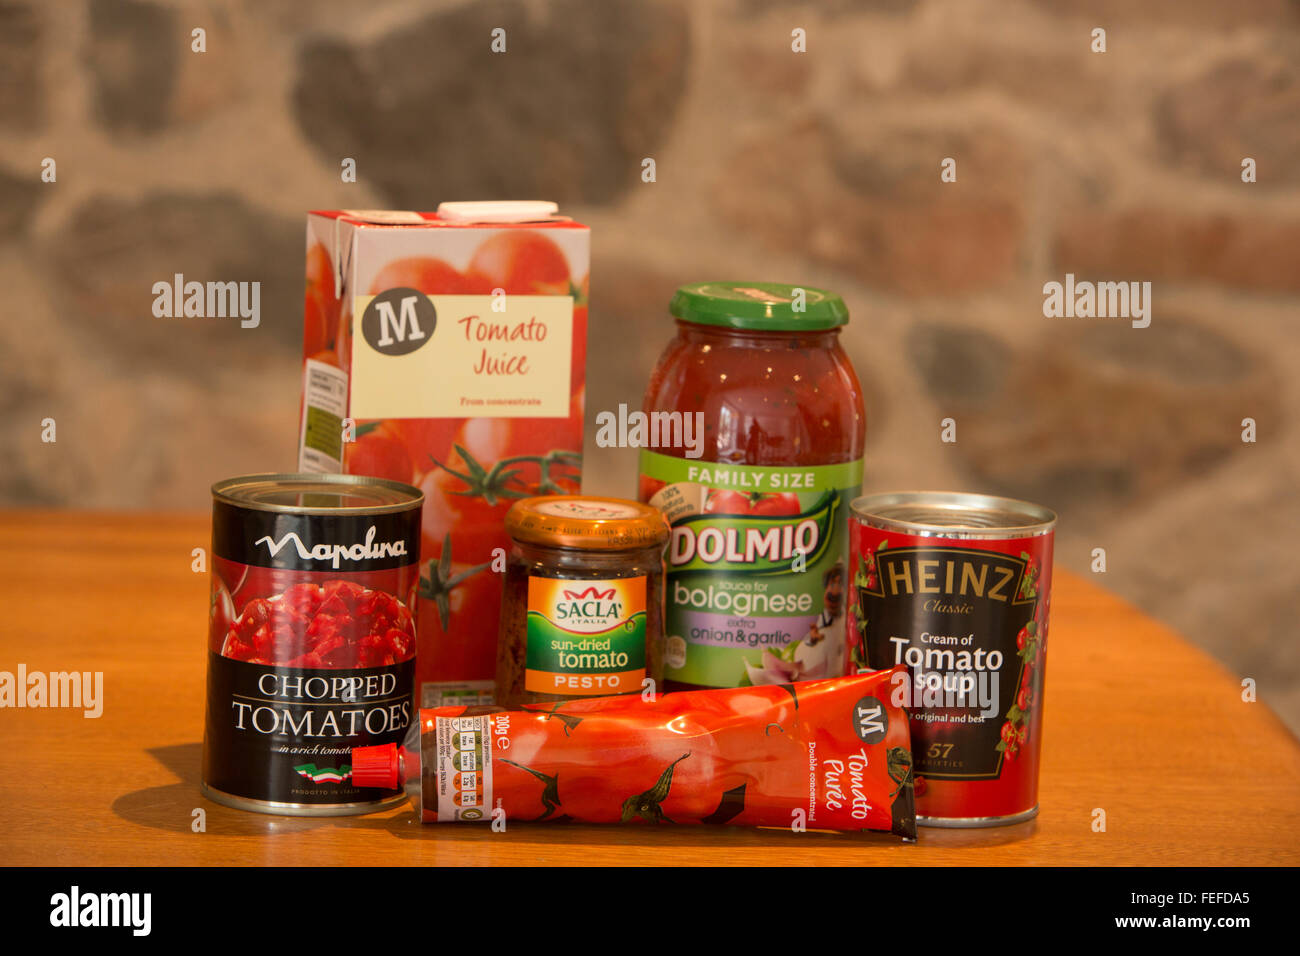 Group of tomato products including soup, puree, juice, sauce, pesto and chopped in cans,bottles, cartons and tubes. - Stock Image